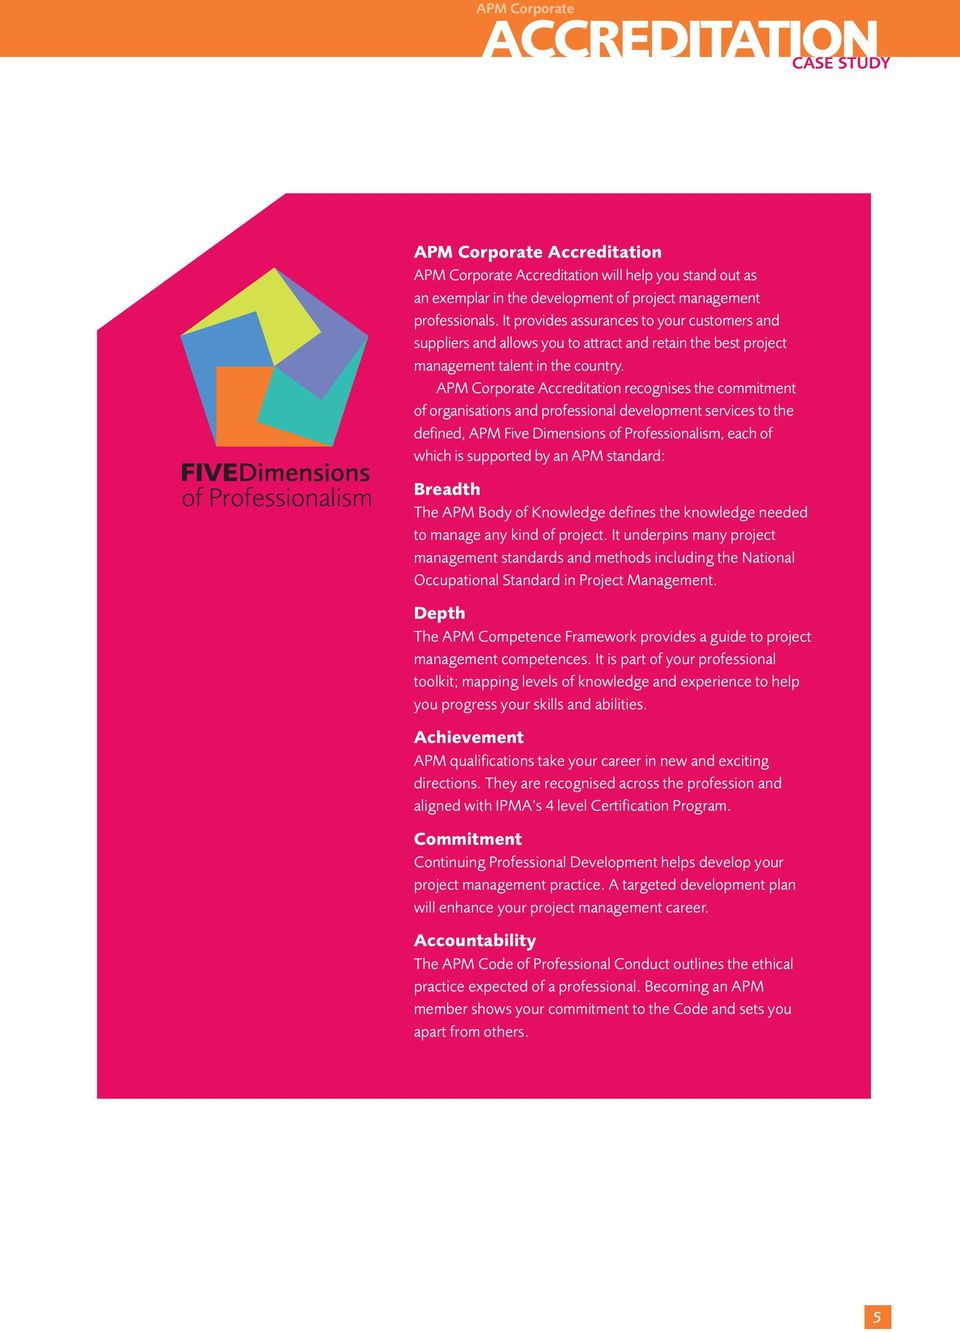 APM Corporate Accreditation recognises the commitment of organisations and professional development services to the defined, APM Five Dimensions of Professionalism, each of which is supported by an